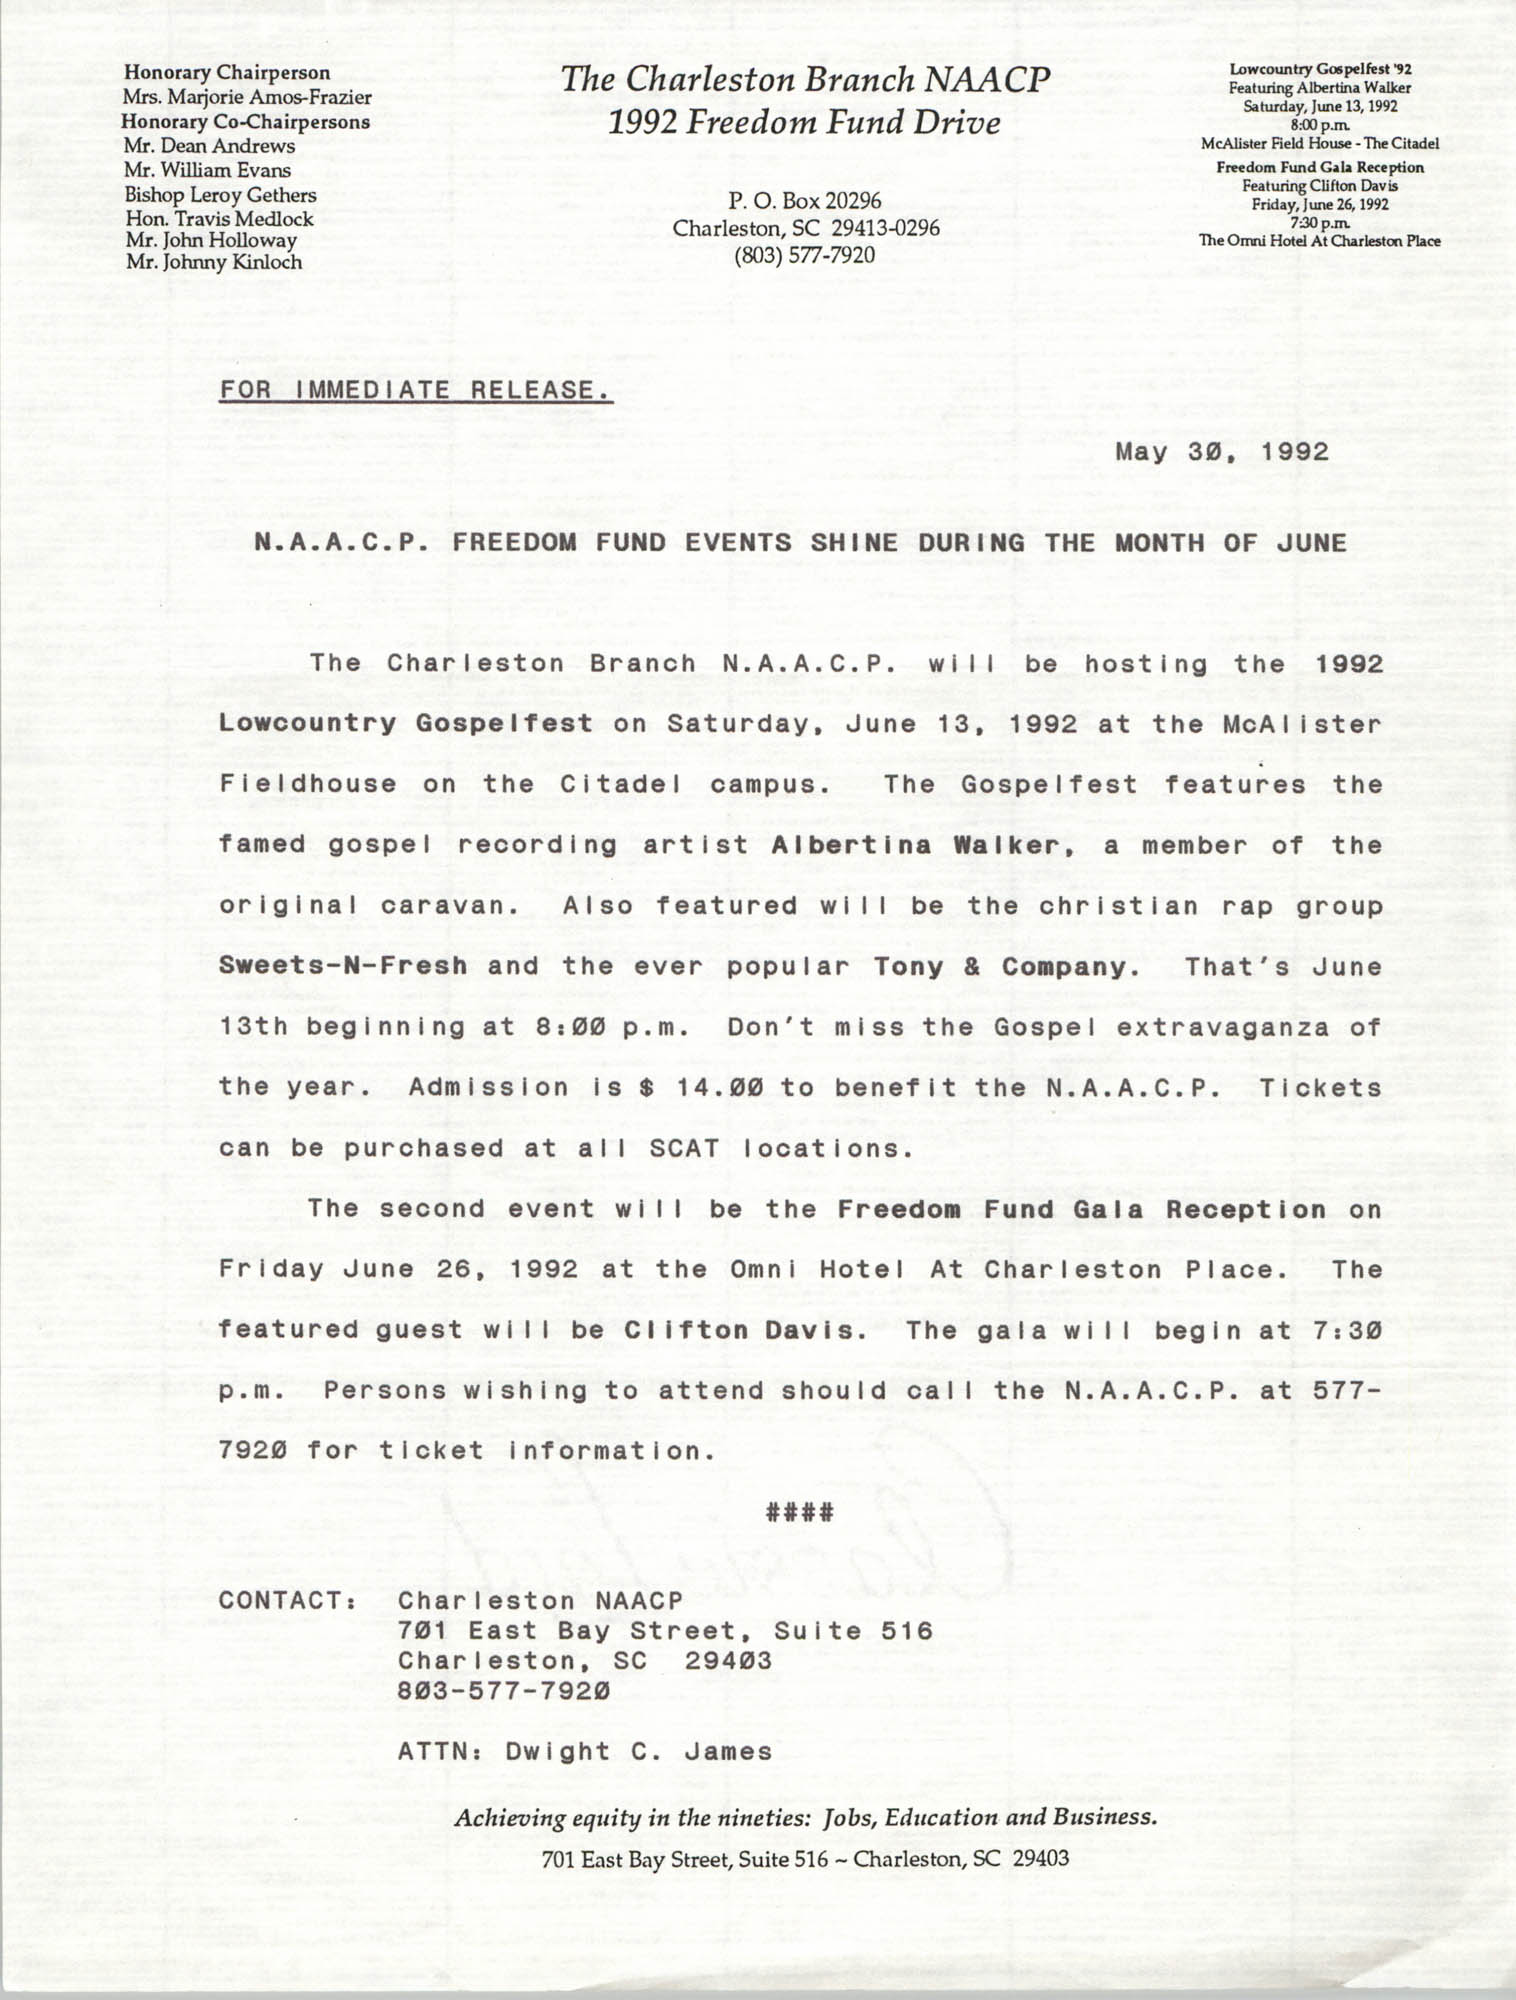 Press Release, NAACP Freedom, Fund Events, May 30, 1992